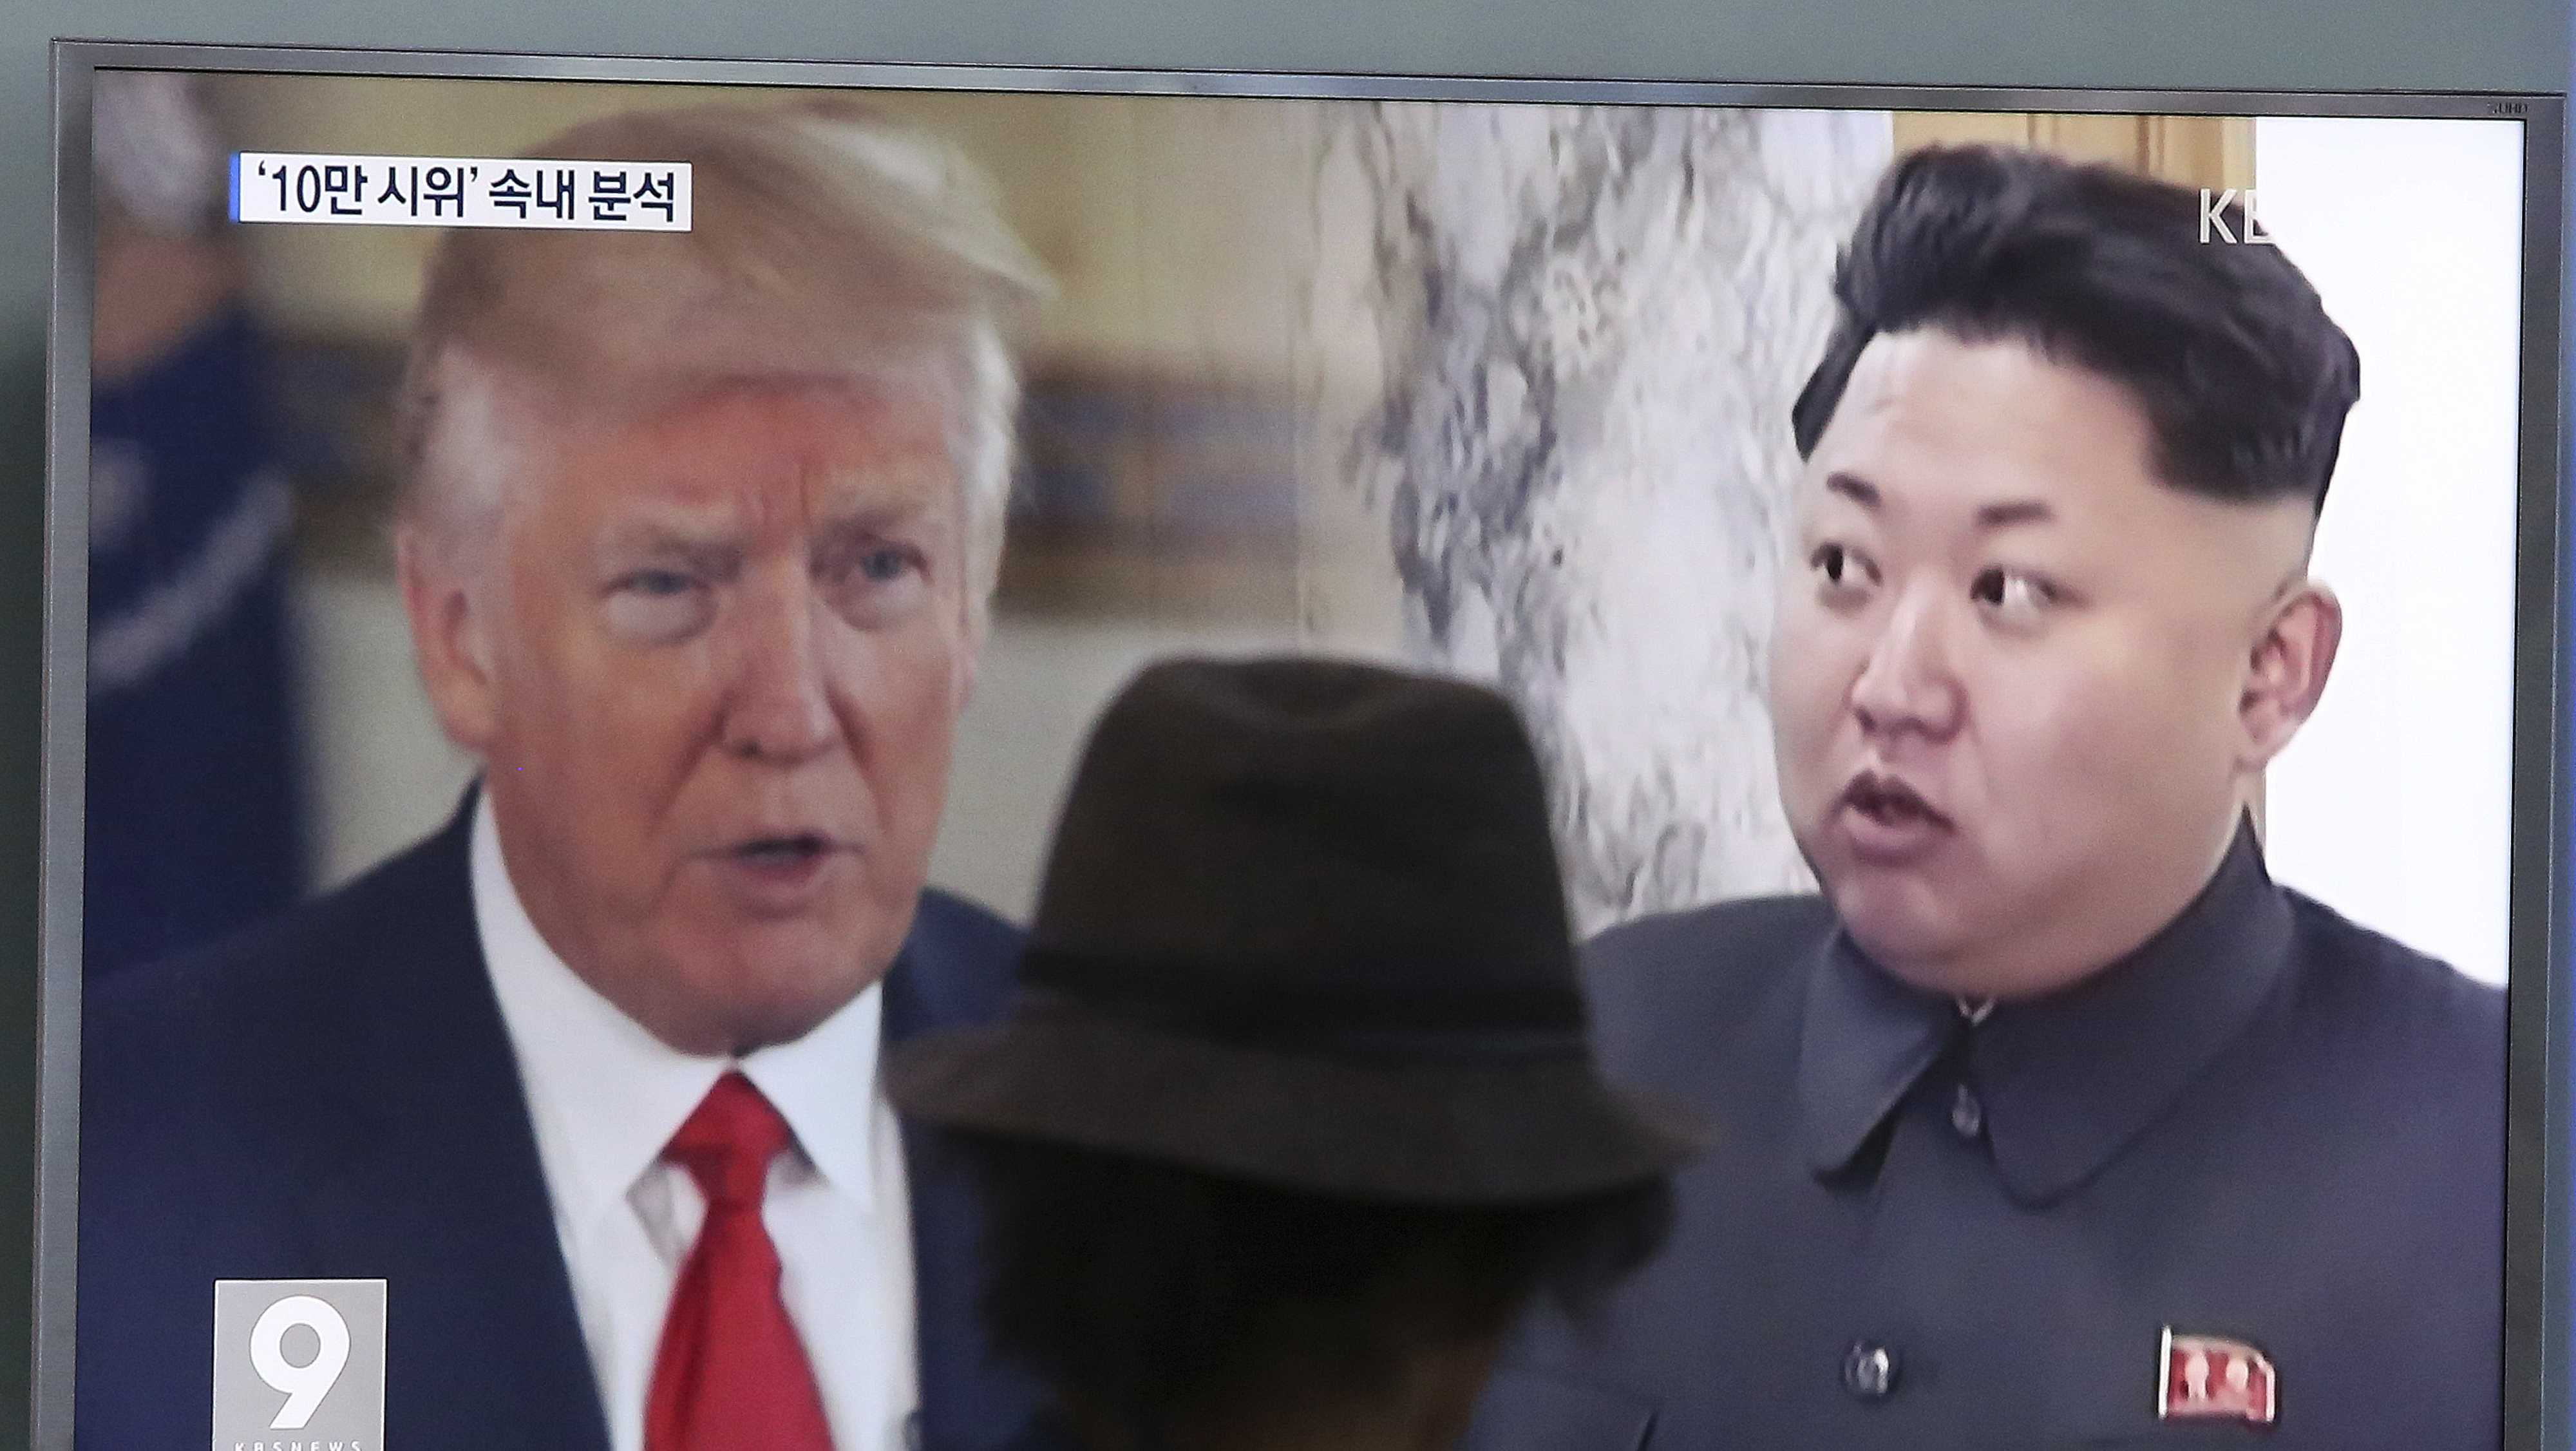 A man watches a television screen showing U.S. President Donald Trump, left, and North Korean leader Kim Jong Un during a news program at the Seoul Train Station in Seoul, South Korea, Thursday, Aug. 10, 2017.